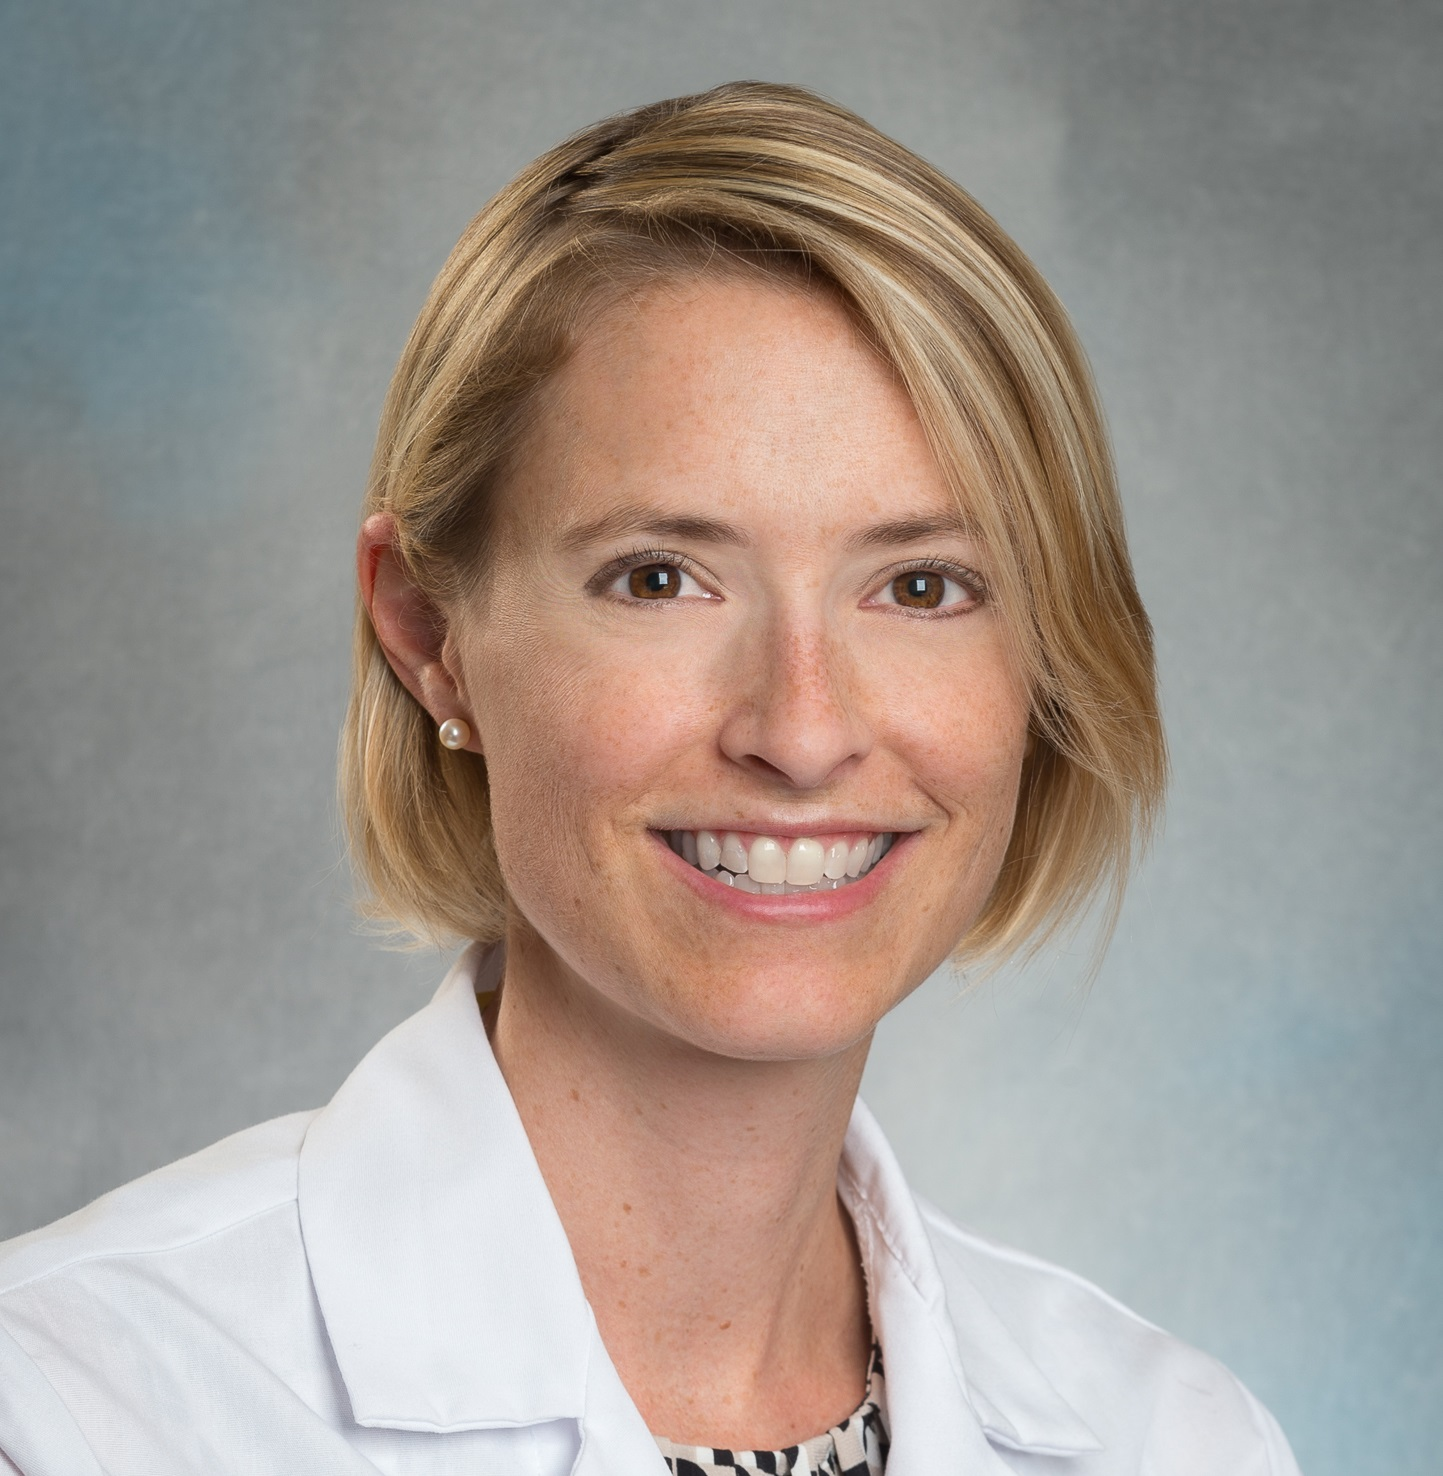 Morgan Elizabeth MD Headshot crop.jpg